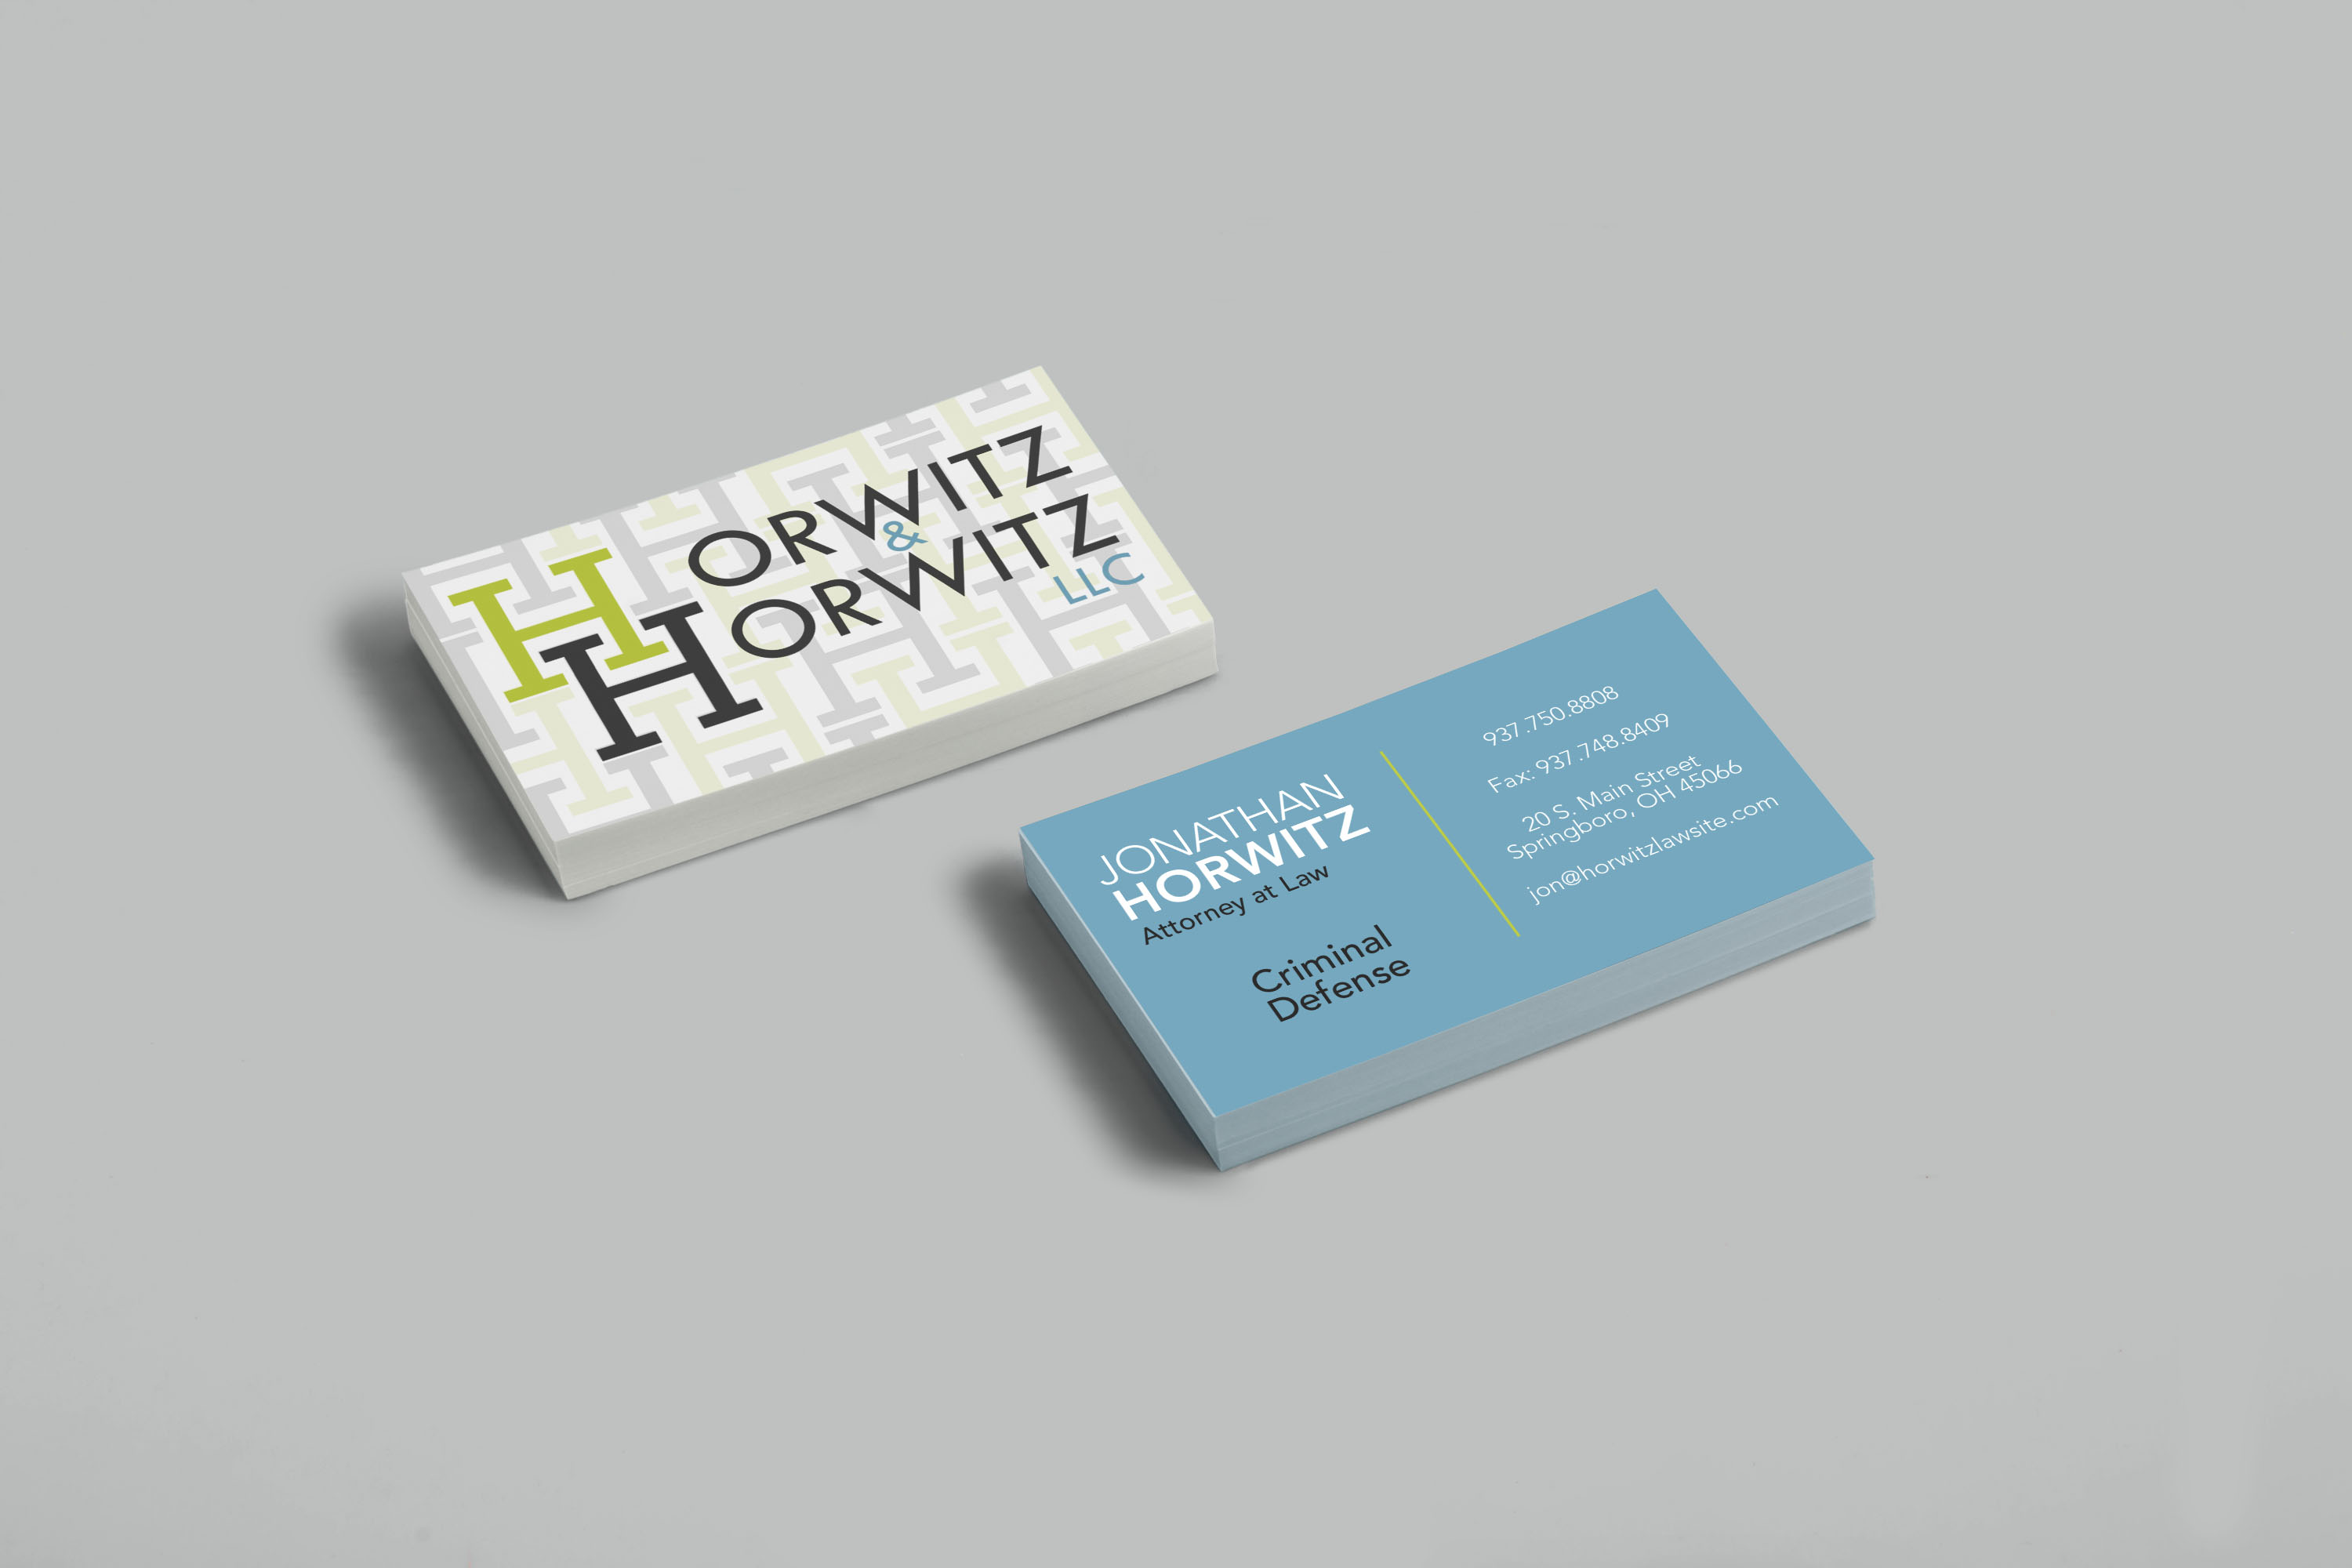 Horwitz & Horwitz, LLC | Print Design - Business Cards | Luke Sillies Design